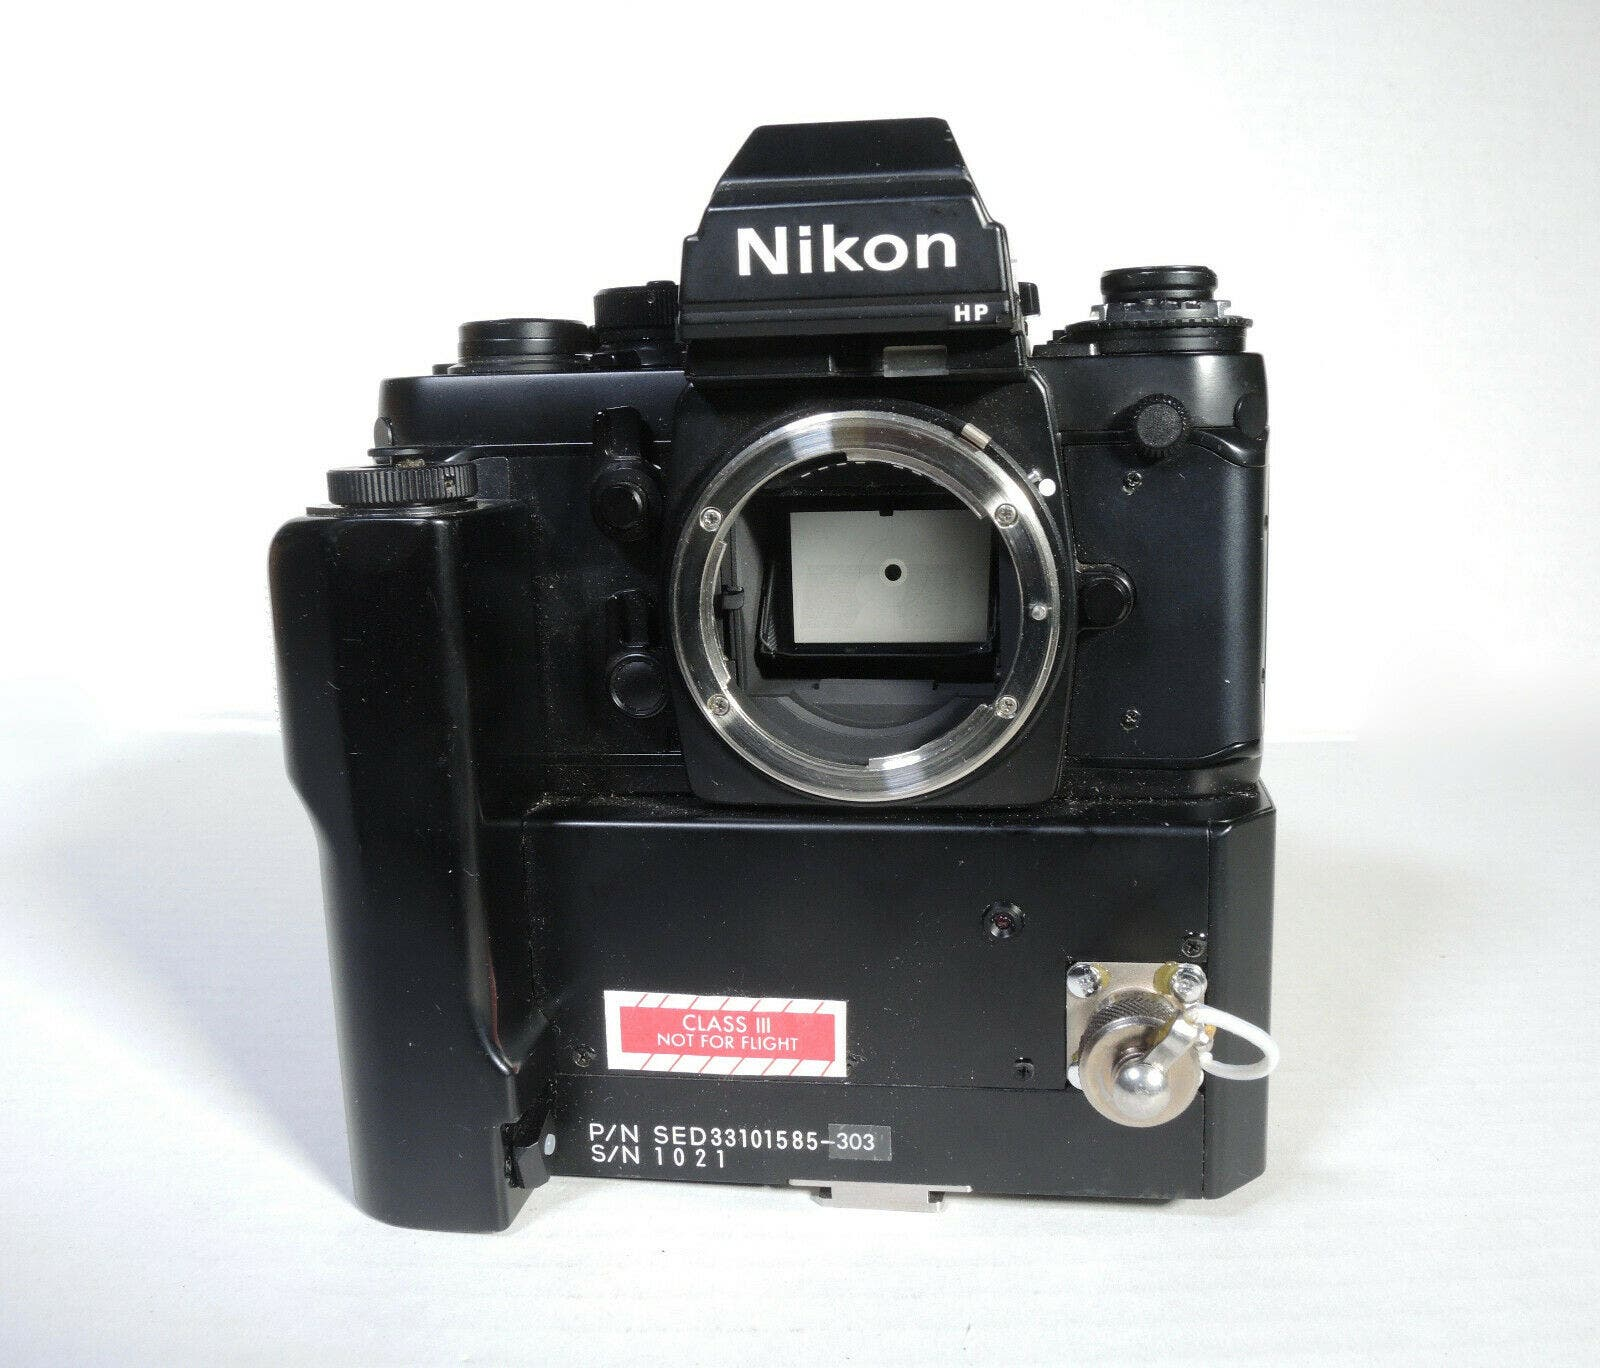 This Nikon F3 Was Made for NASA and Actually Went to Space